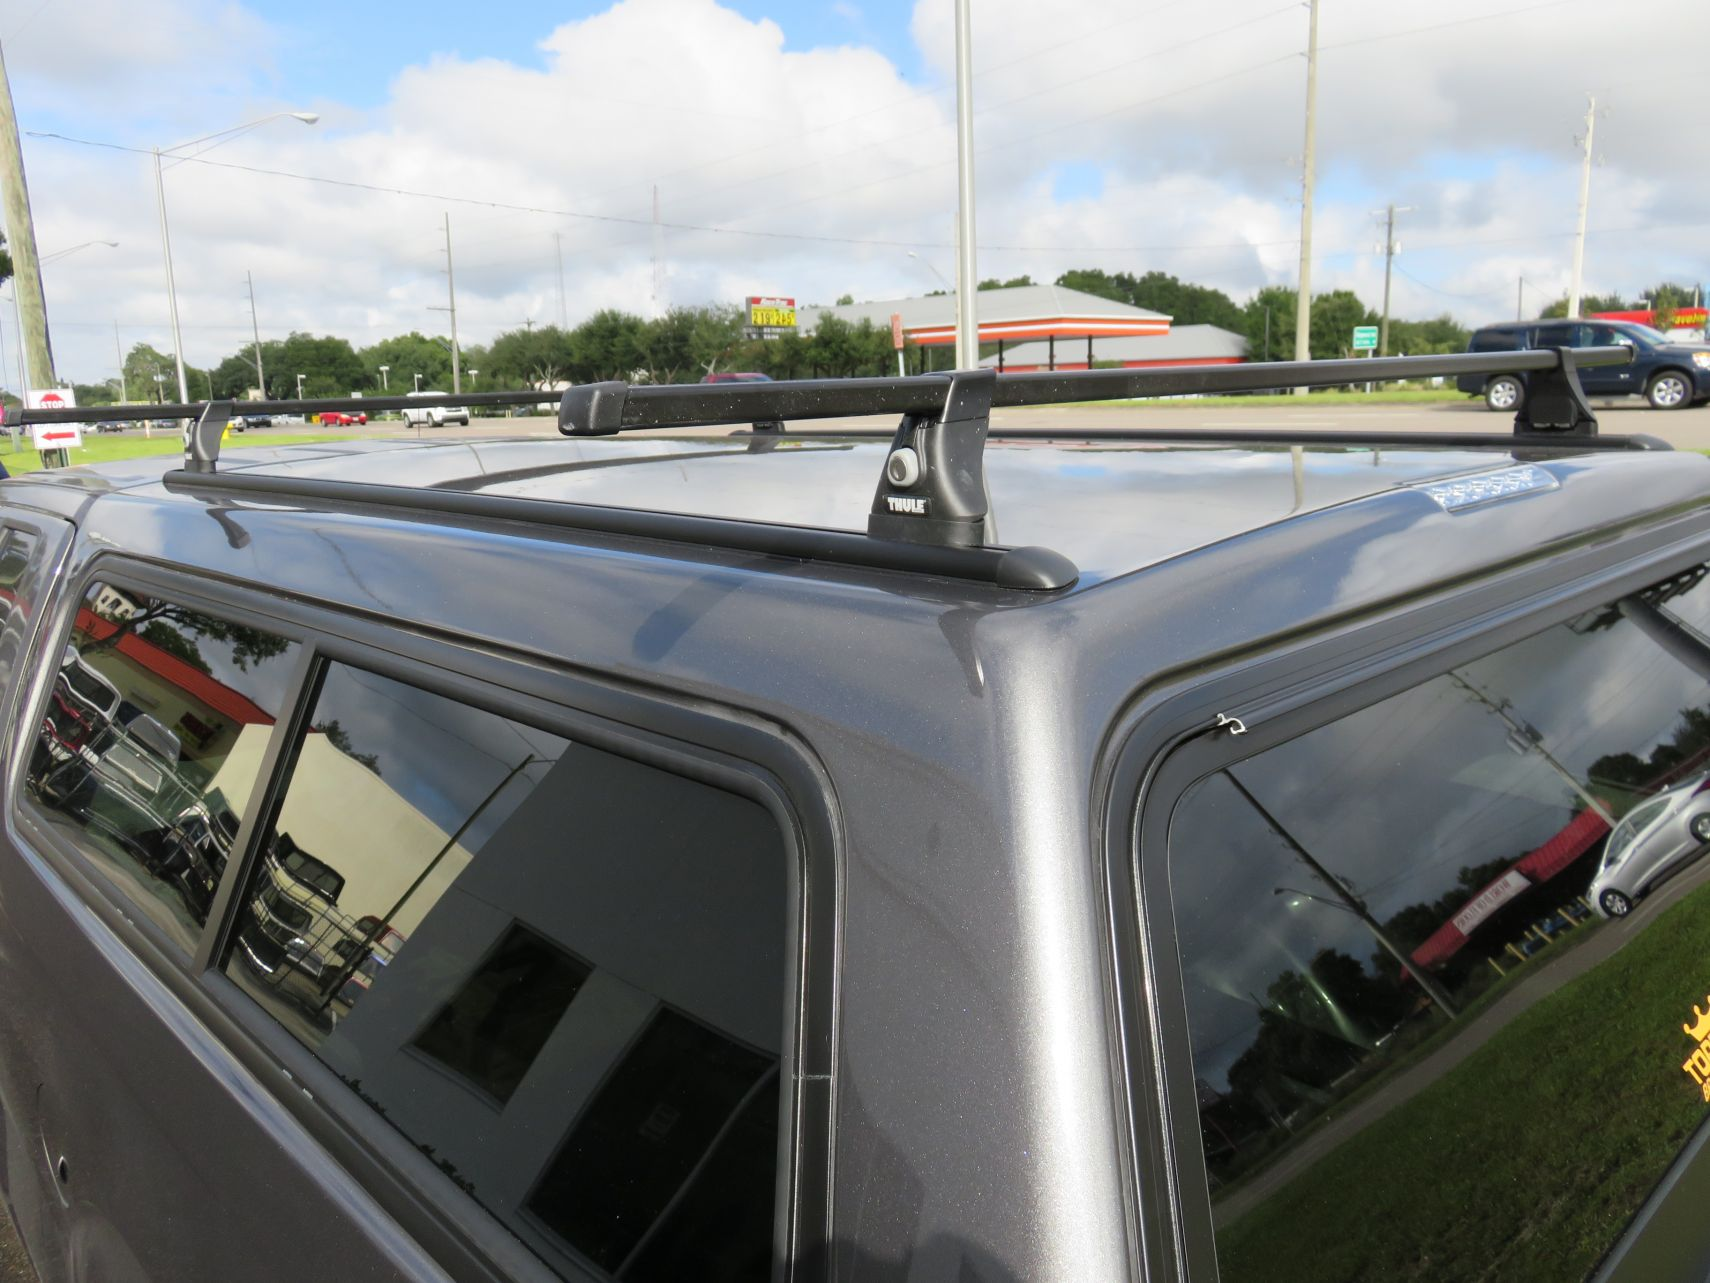 Thule Tracker II Roof Rack & Thule Tracker II Roof Rack - TopperKING : TopperKING | Providing ...